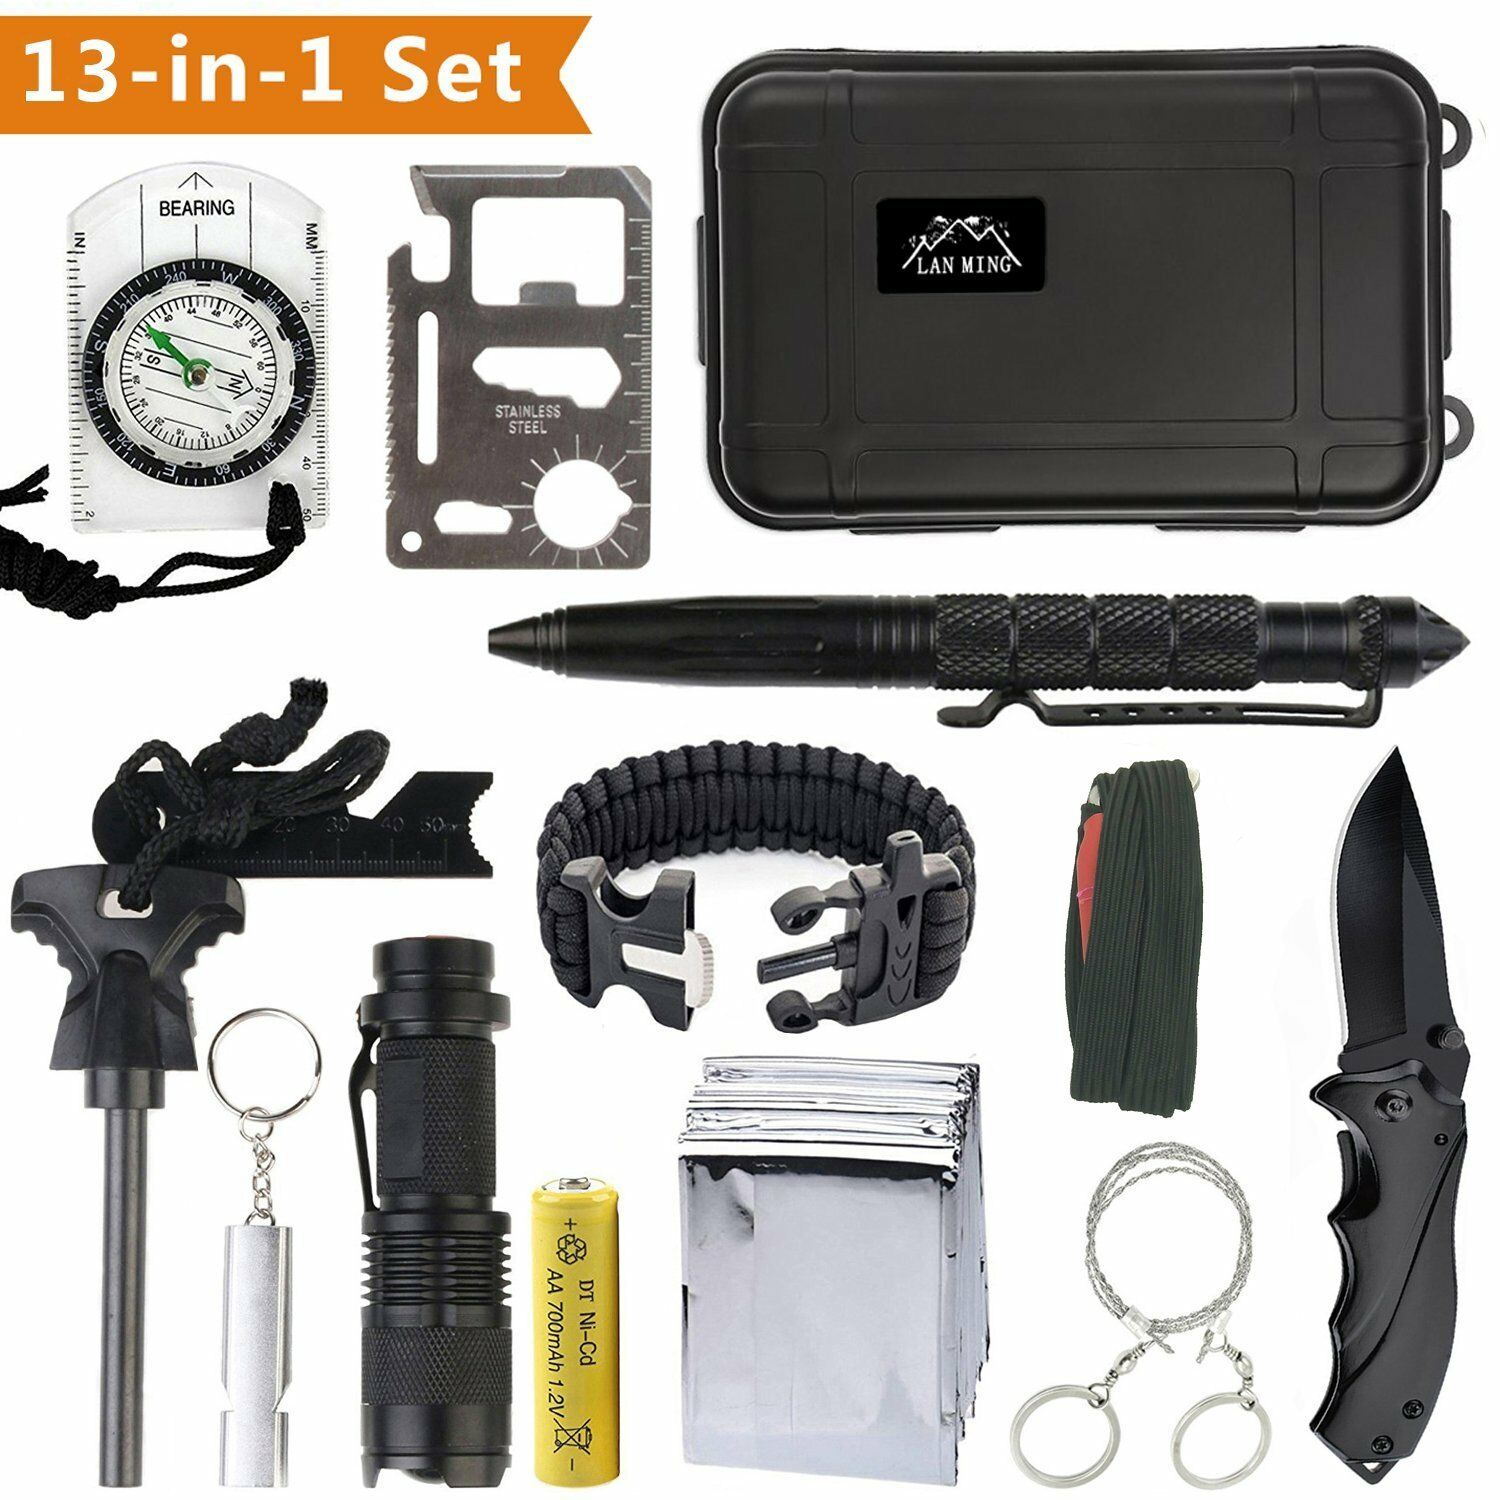 Kit survival Professional Squad  SOS's Emergency Hiking Camping  all in high quality and low price